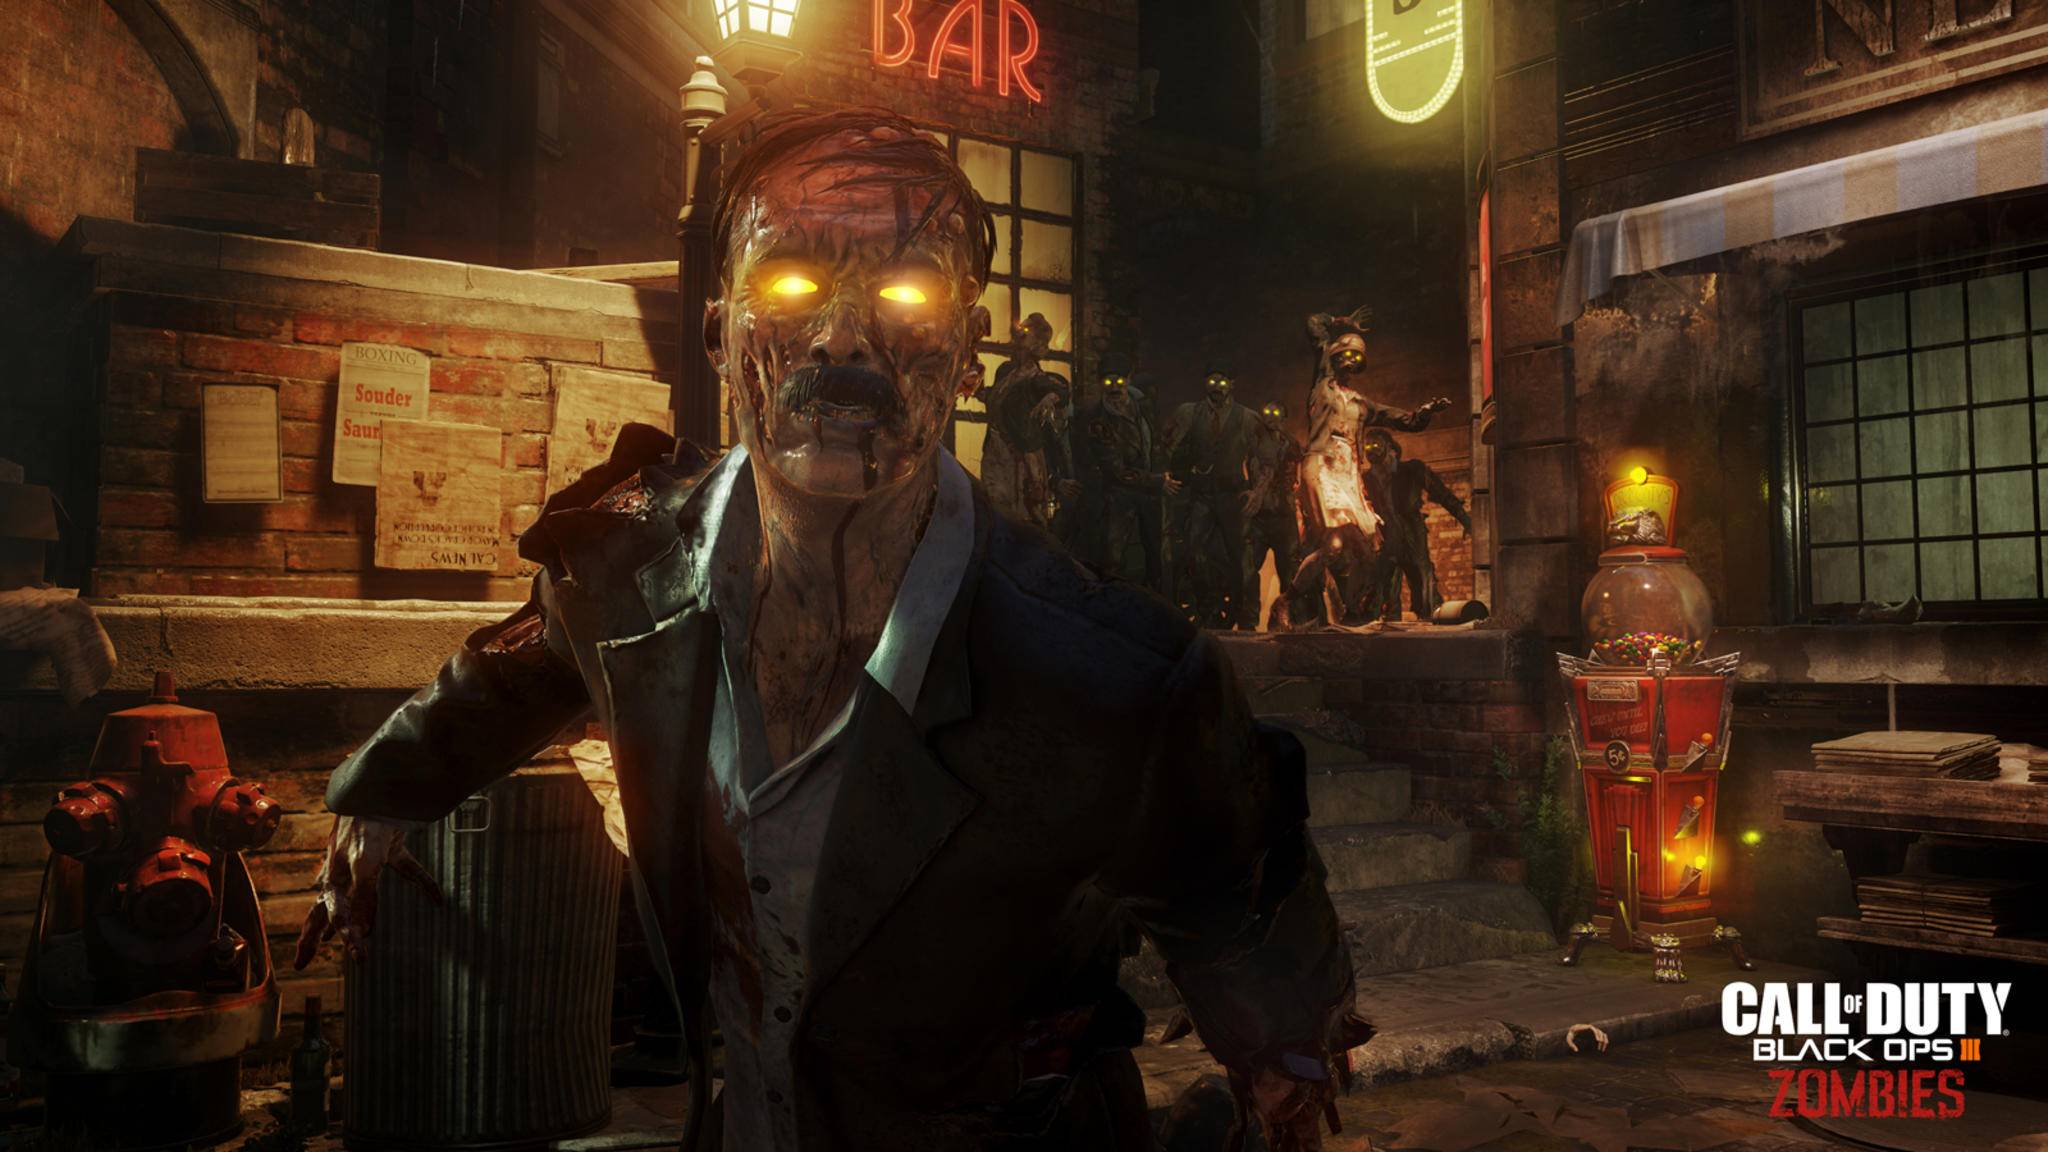 Black Ops 3 Zombies: Shadows of Evil